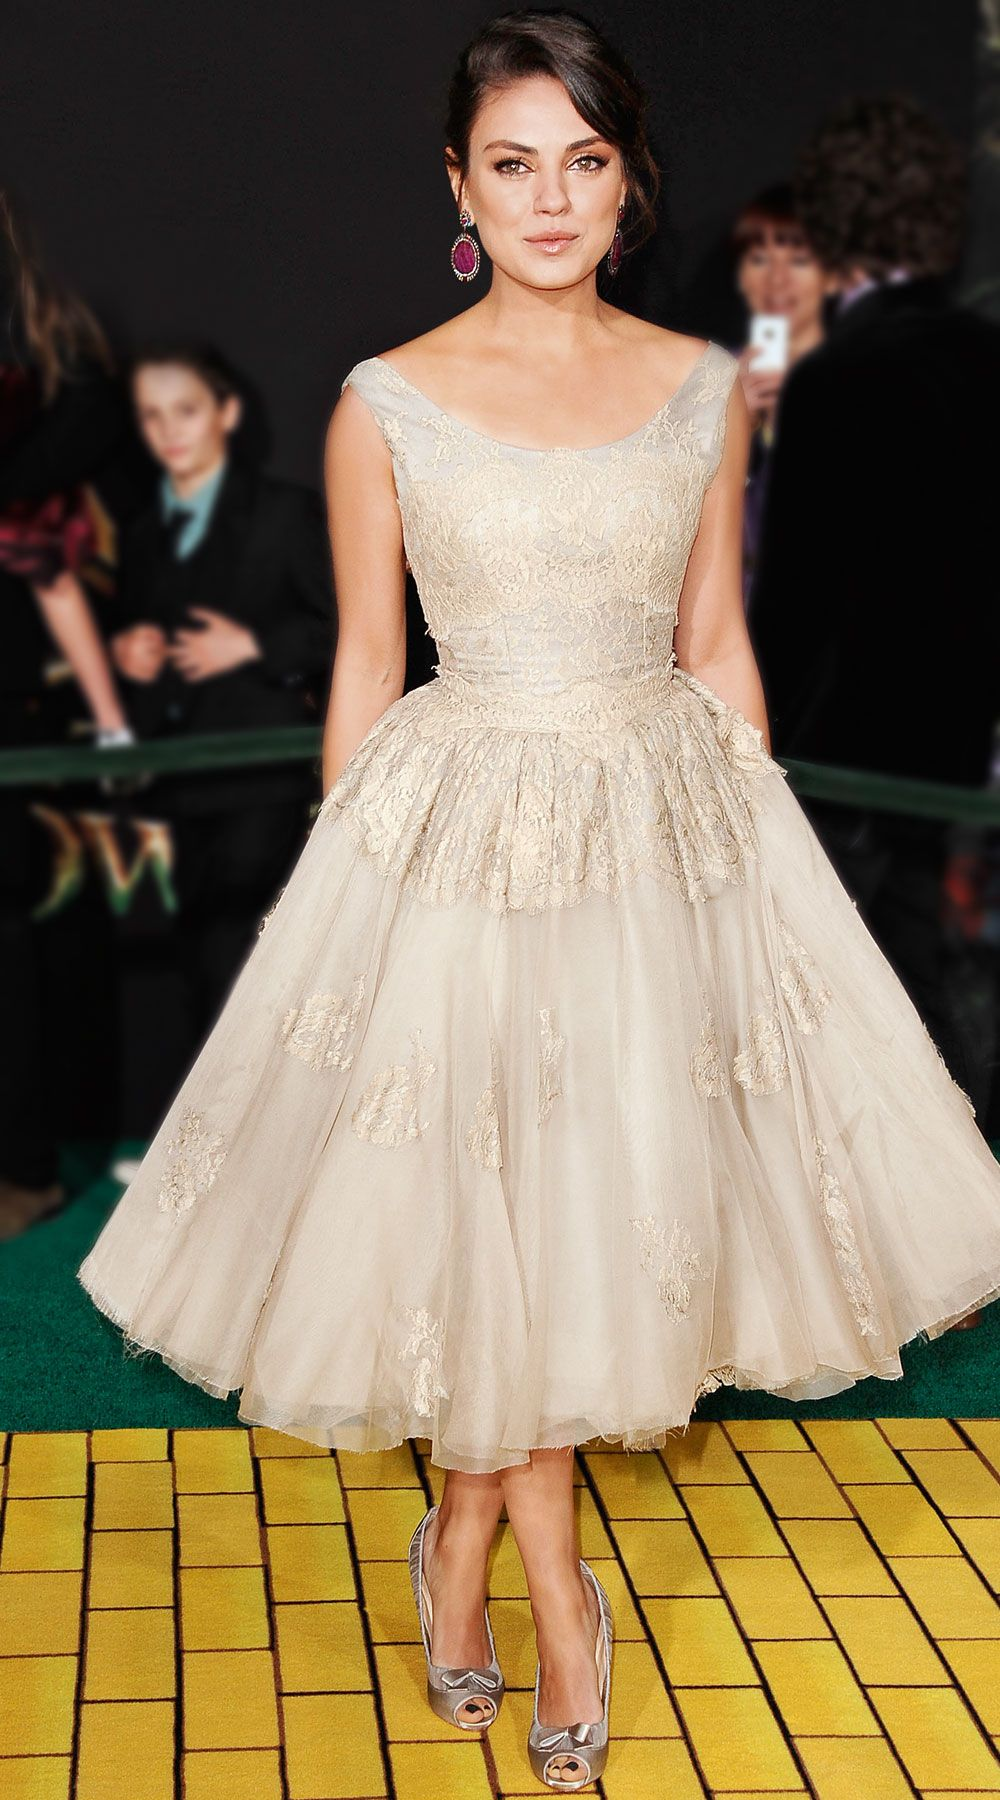 Champagne and ivory wedding dress  HauteCouture  Nice and Classy  Pinterest  Champagne Formal and